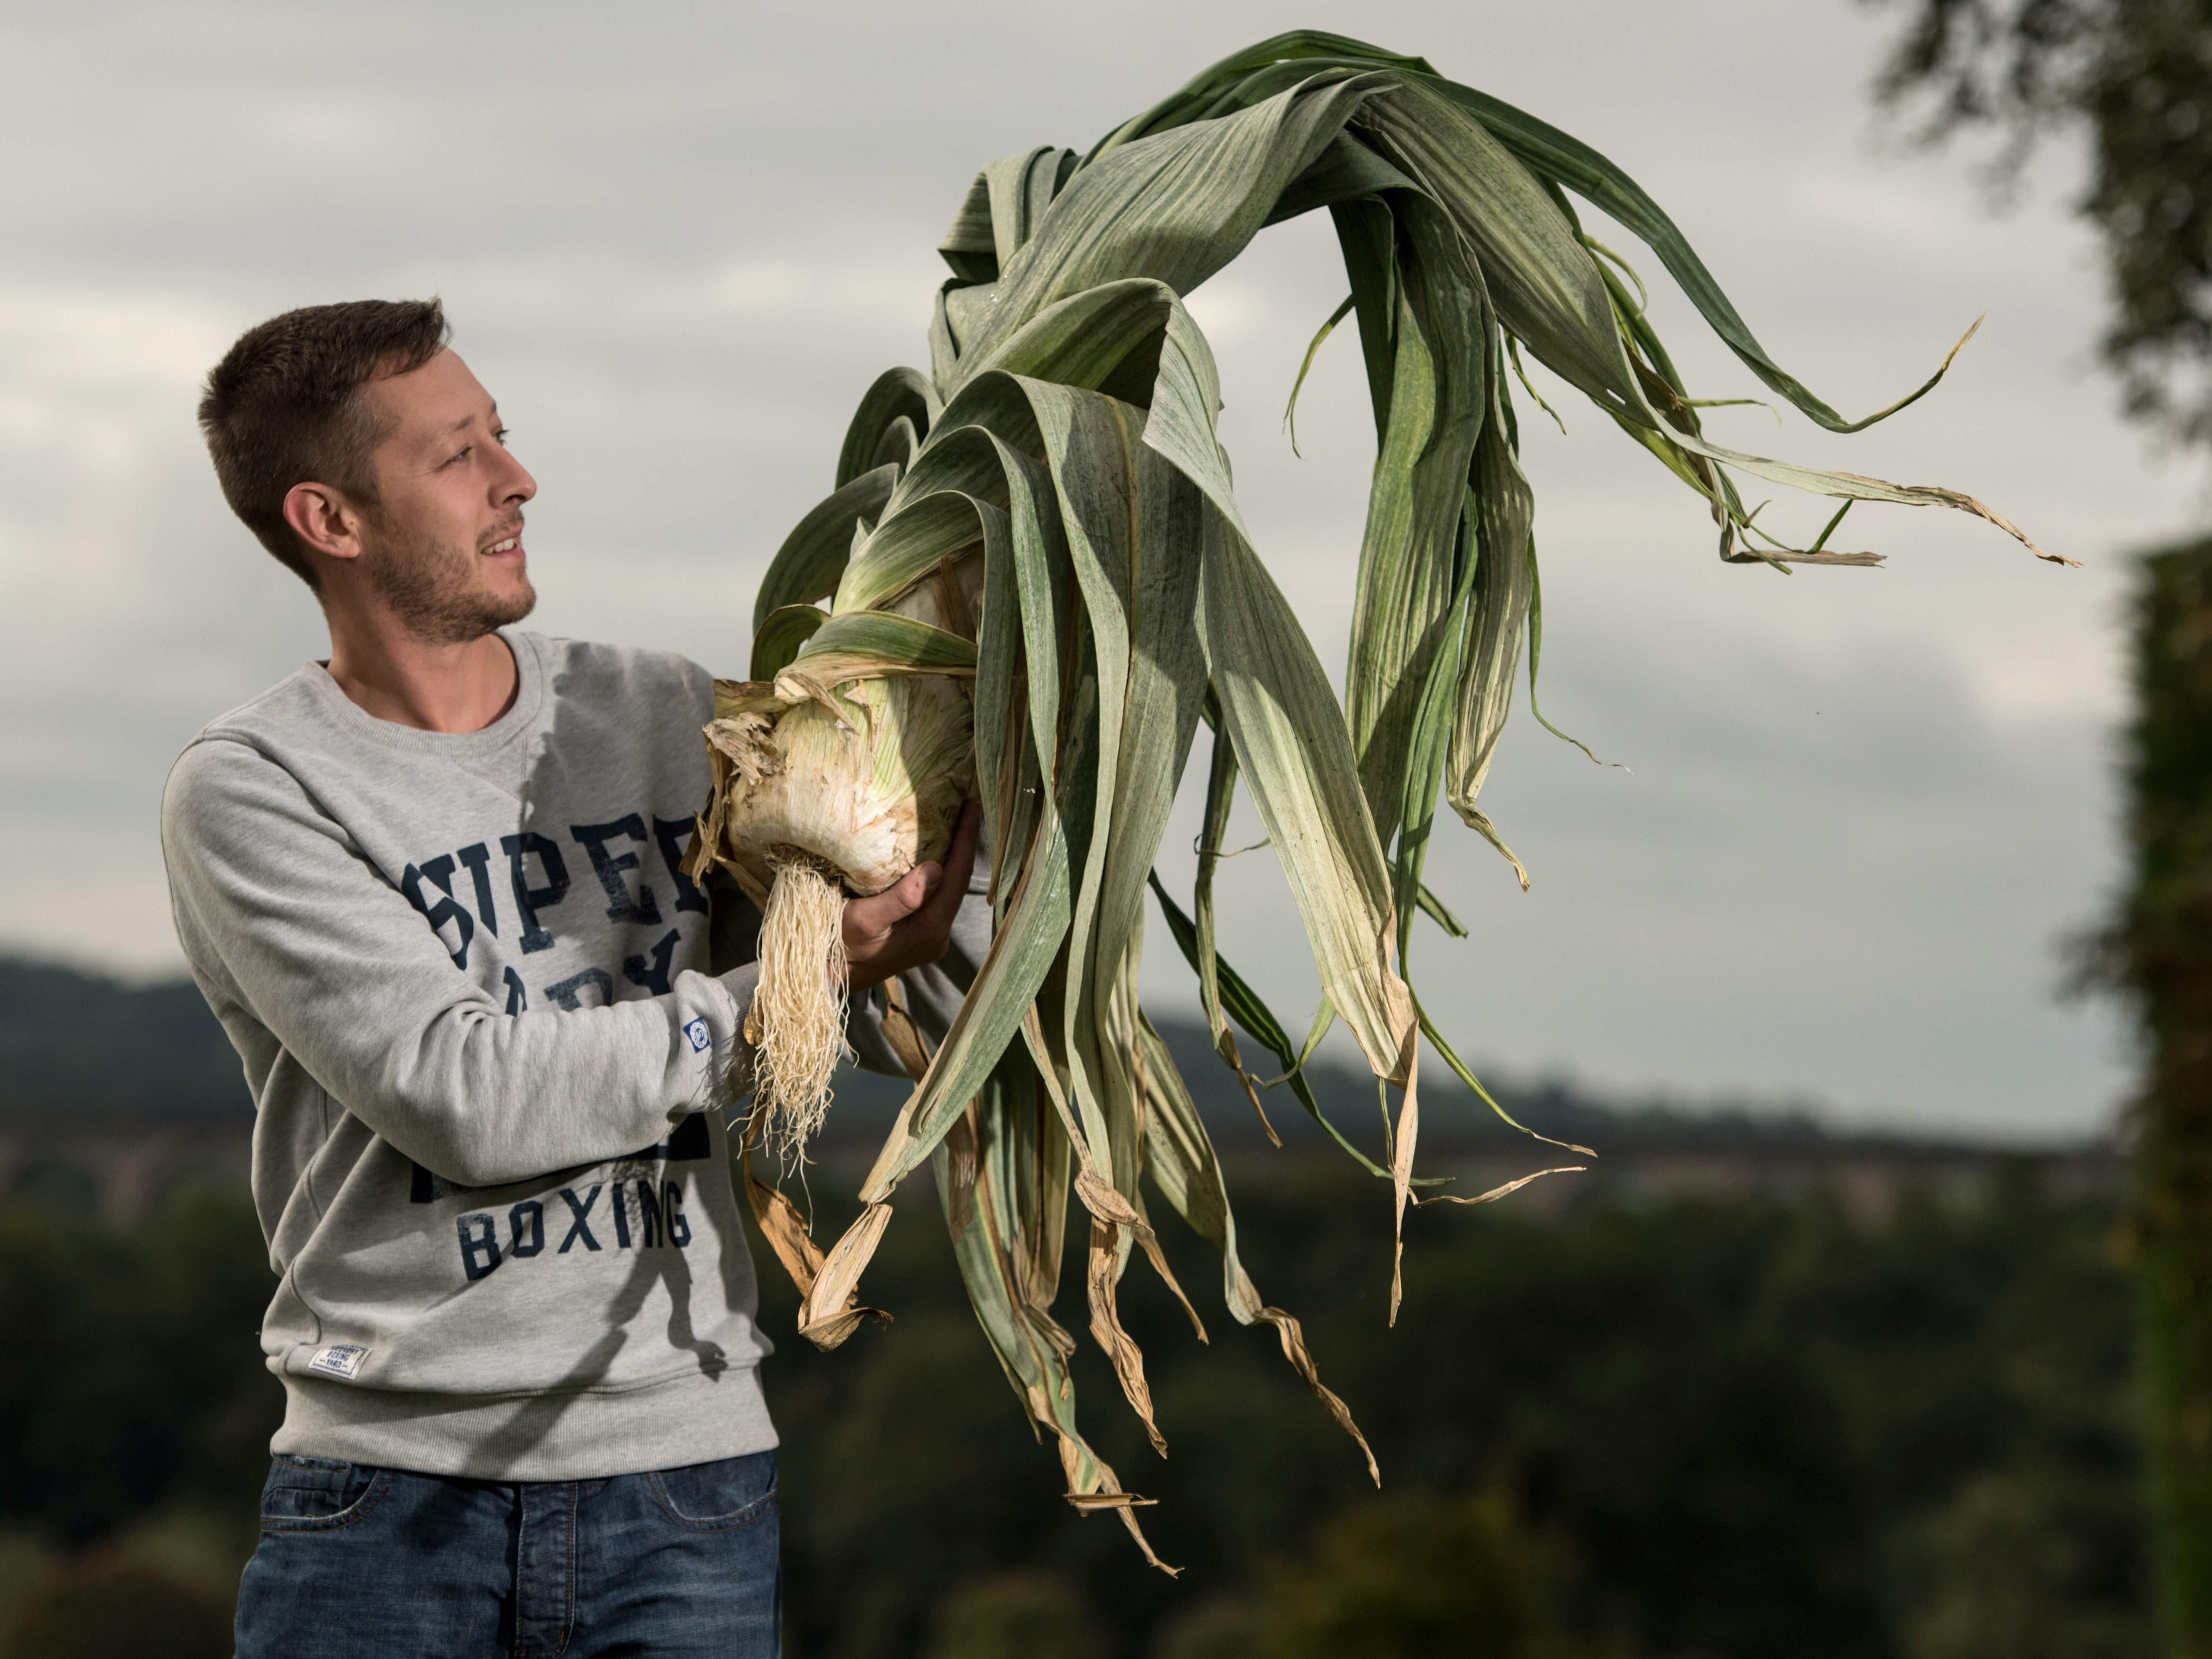 Mark Shepherd with his 14 pound leek which won the heaviest leek competition.